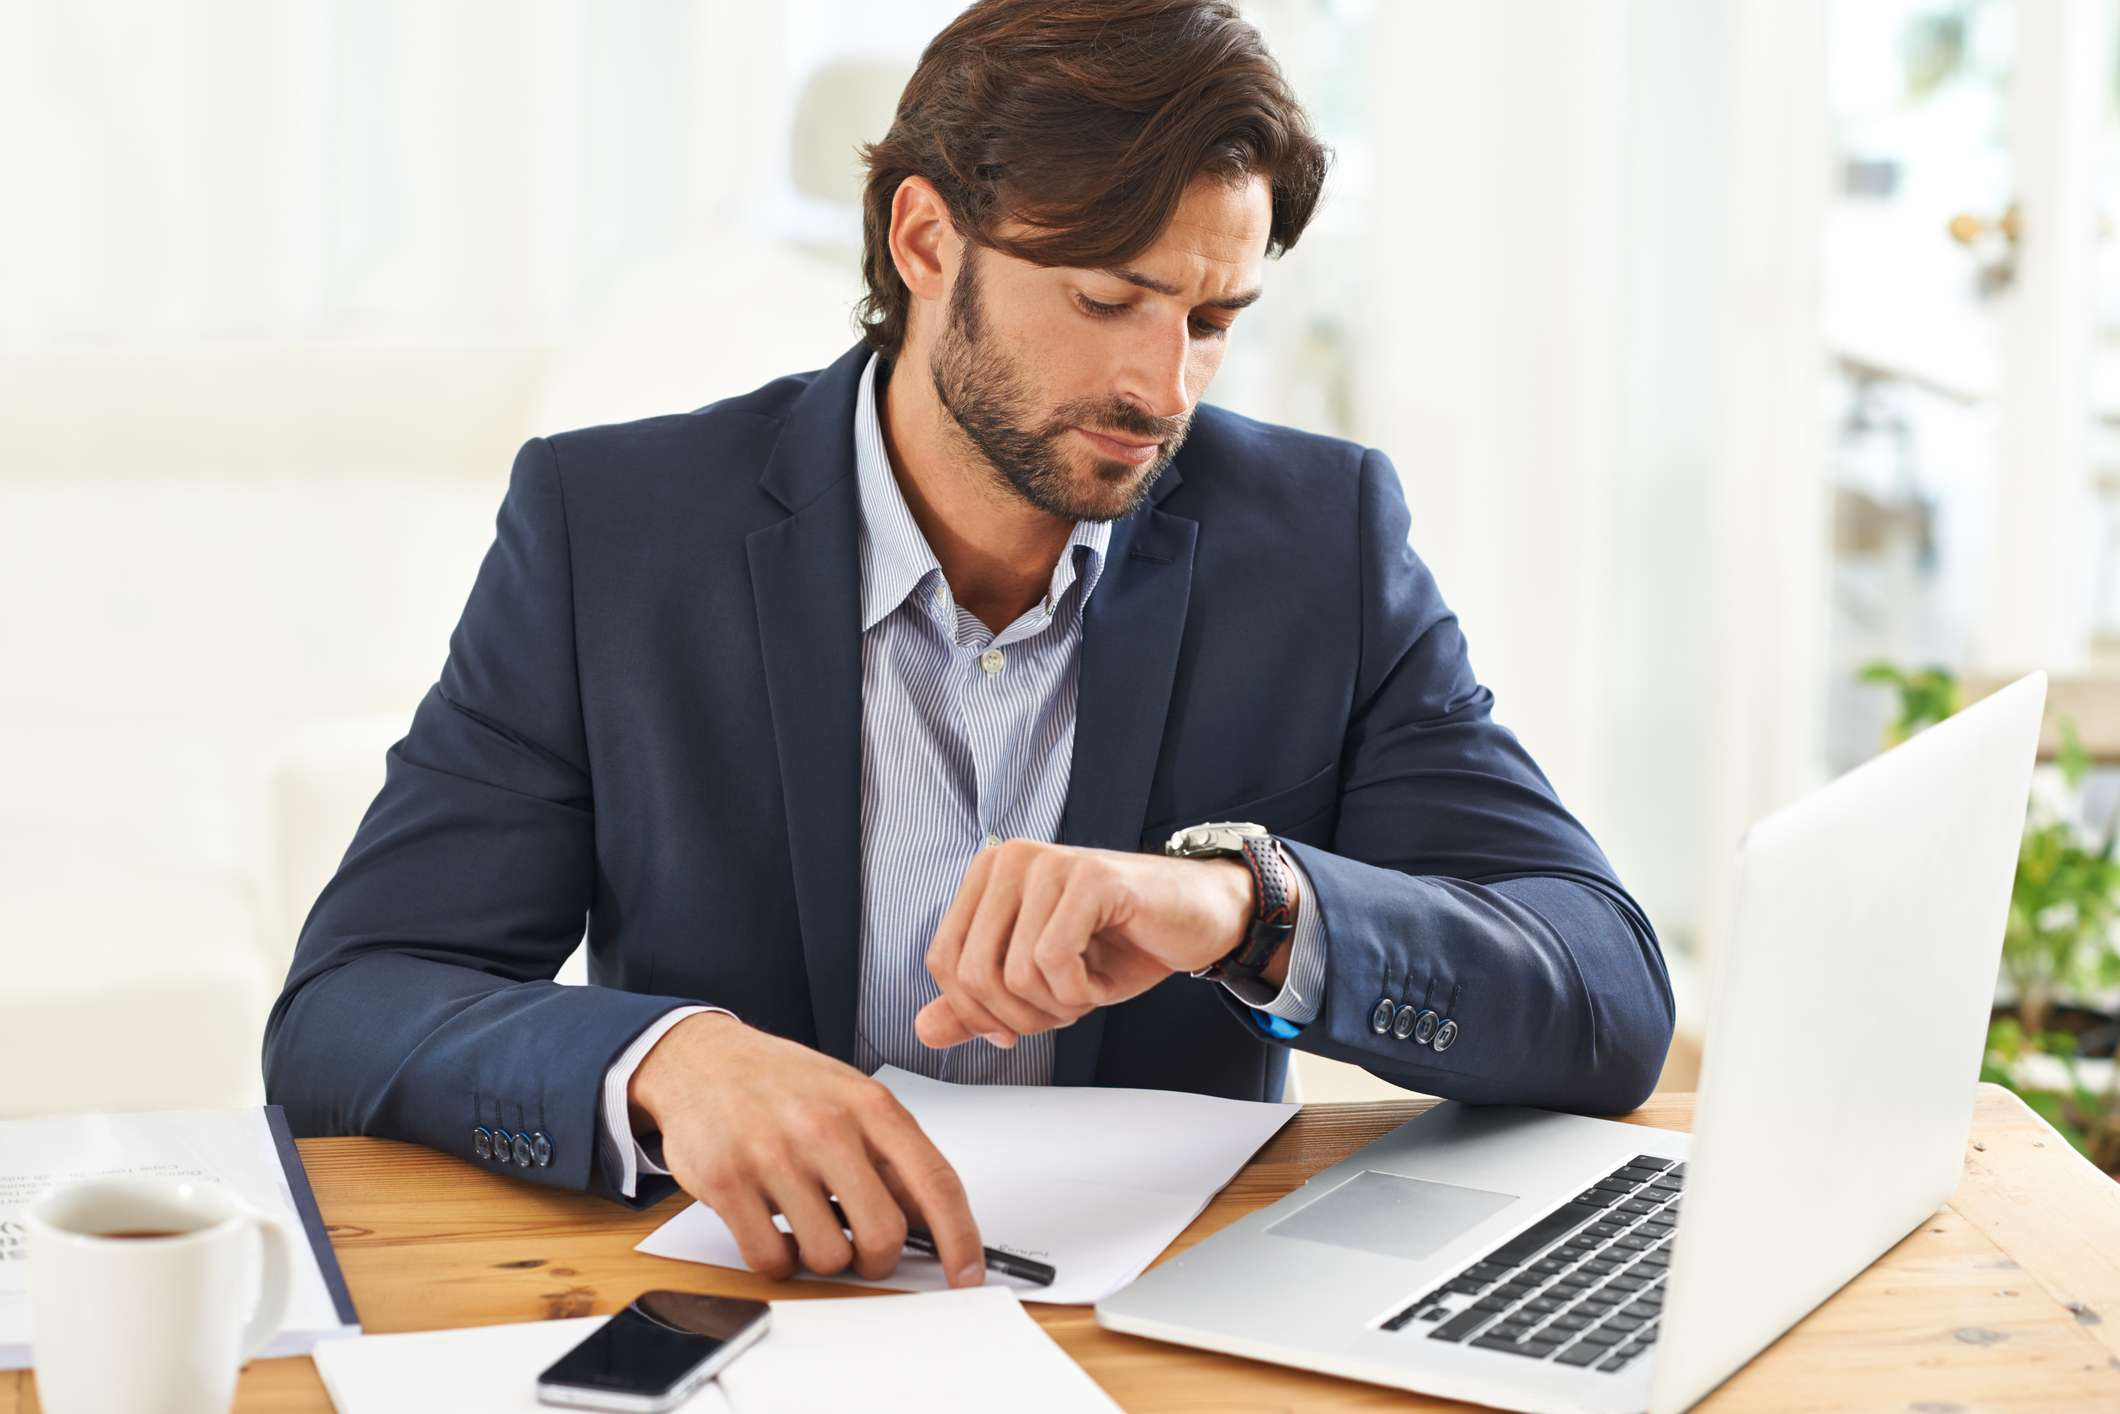 Man working on computer checking his watch